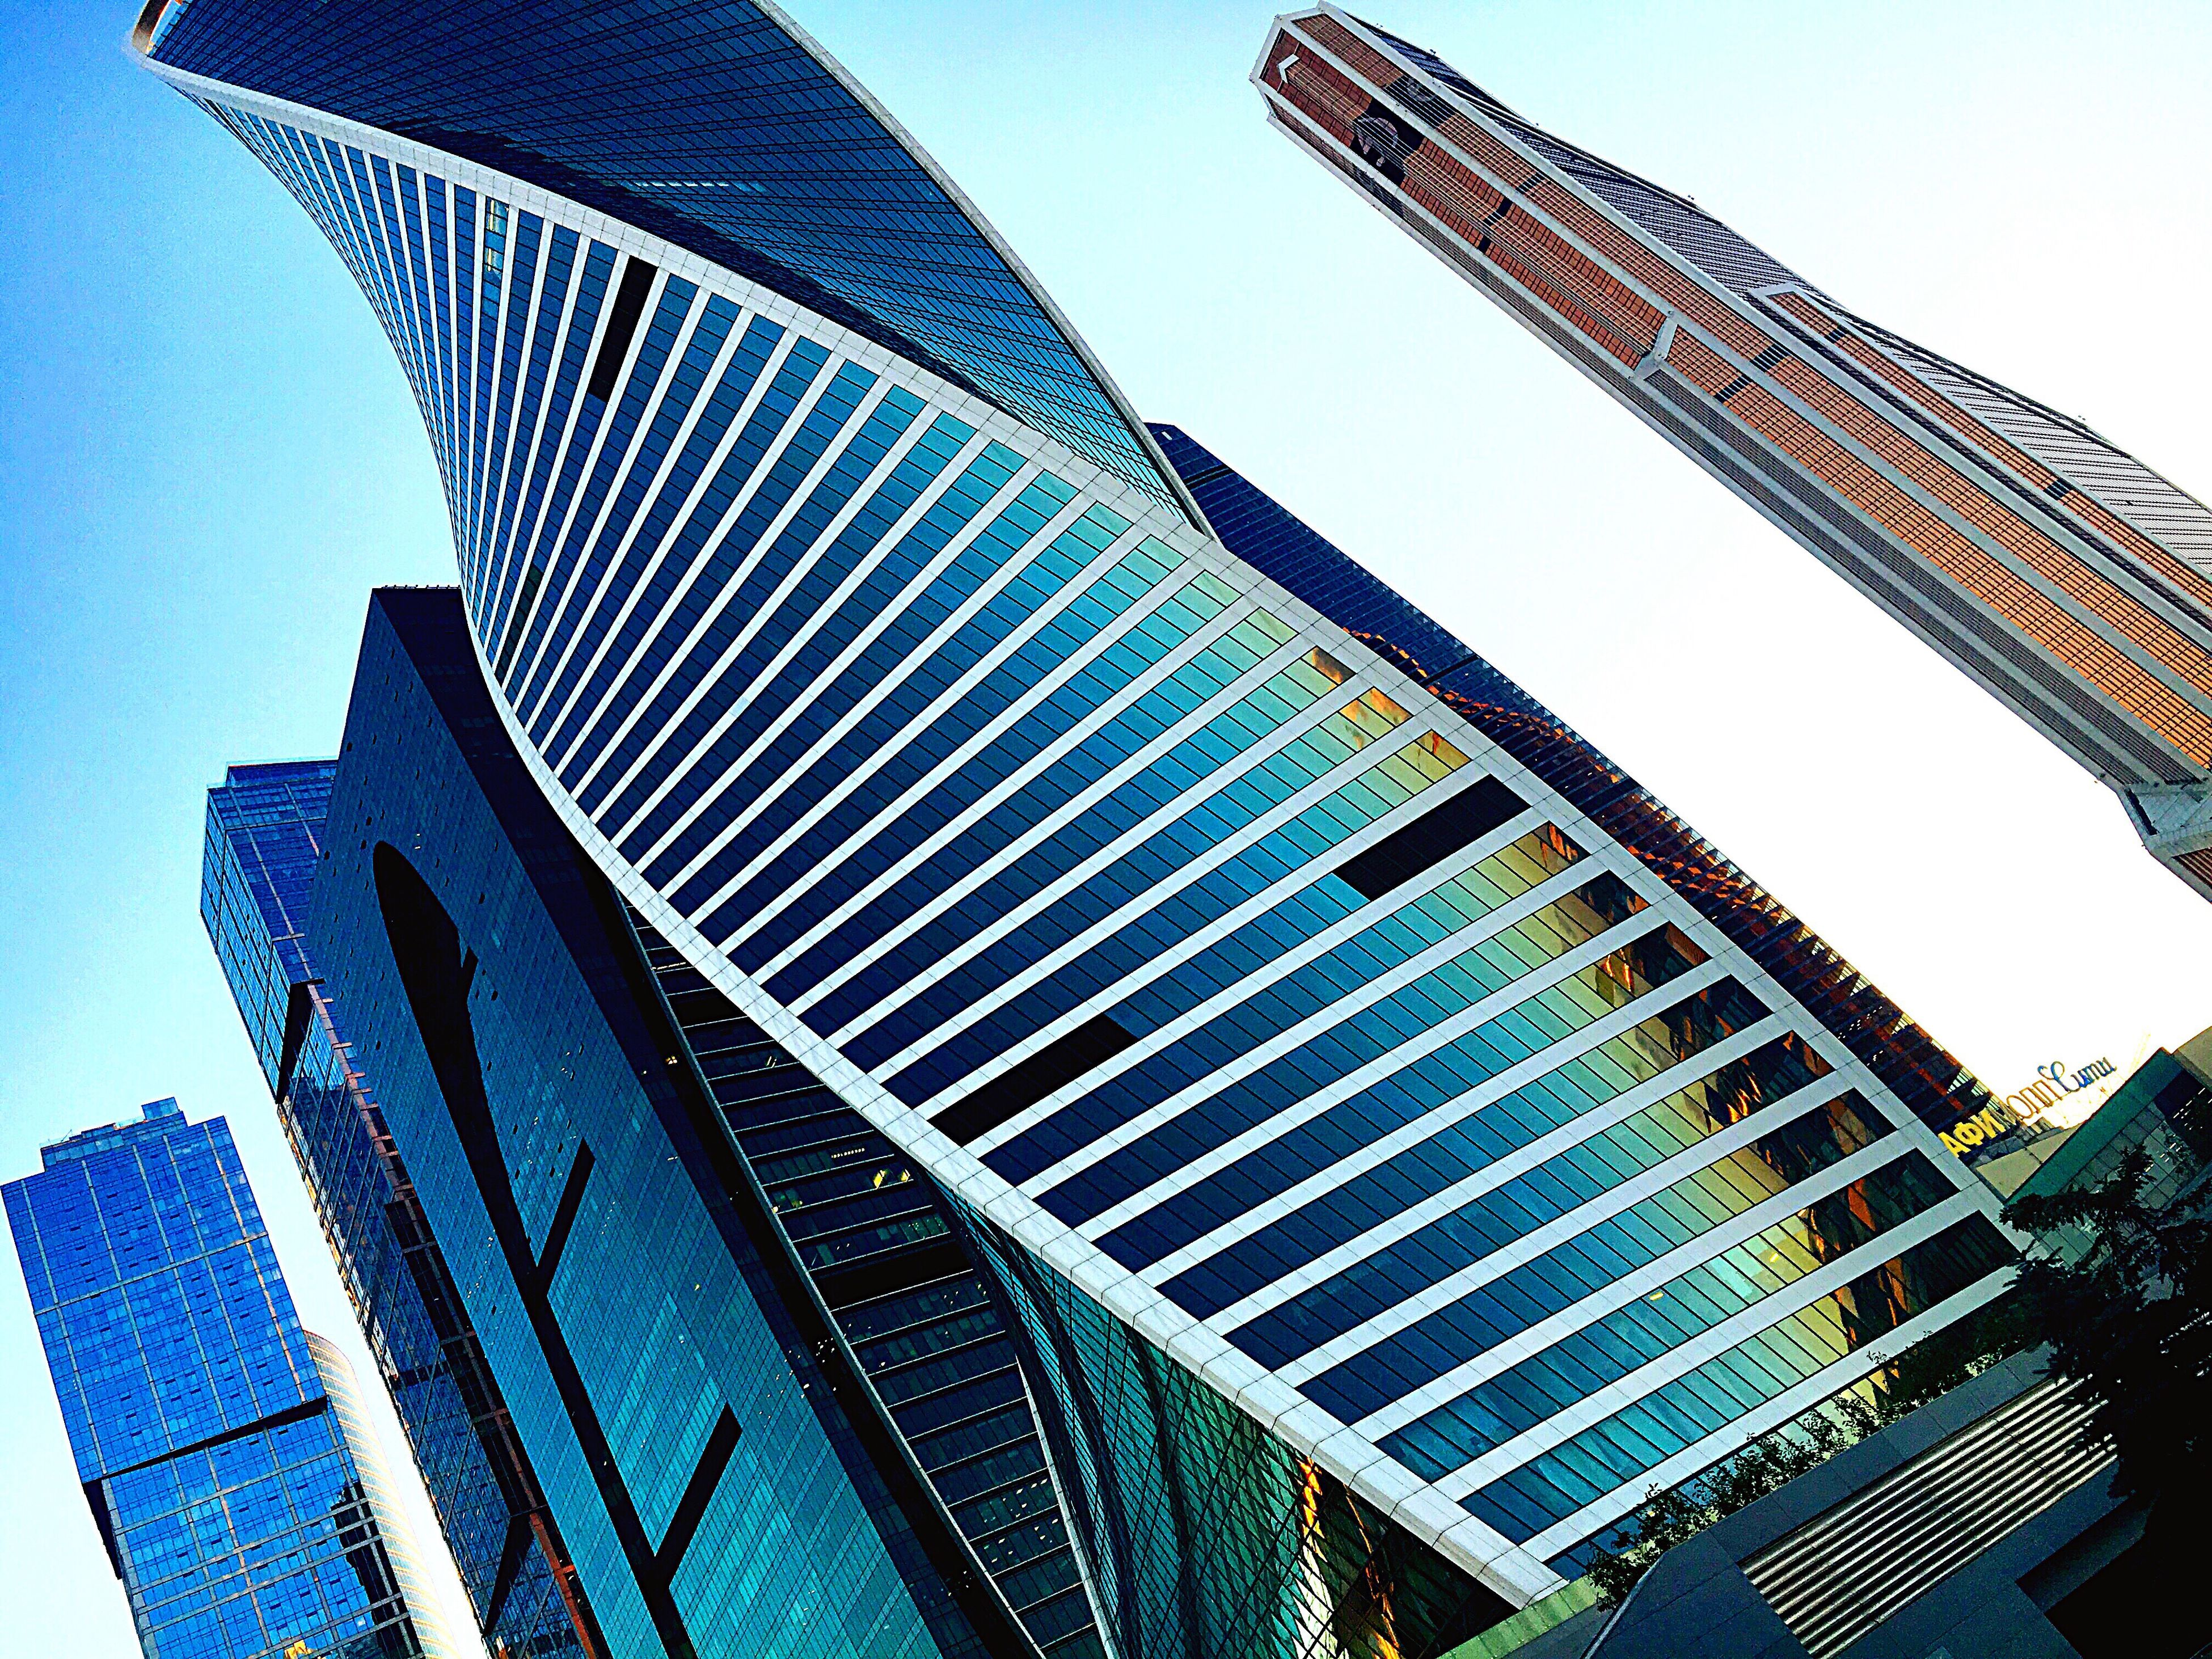 low angle view, architecture, building exterior, built structure, clear sky, skyscraper, tower, office building, city, tall - high, modern, sky, tall, place of work, blue, building story, outdoors, repetition, development, day, financial district, architectural feature, city life, no people, capital cities, urban skyline